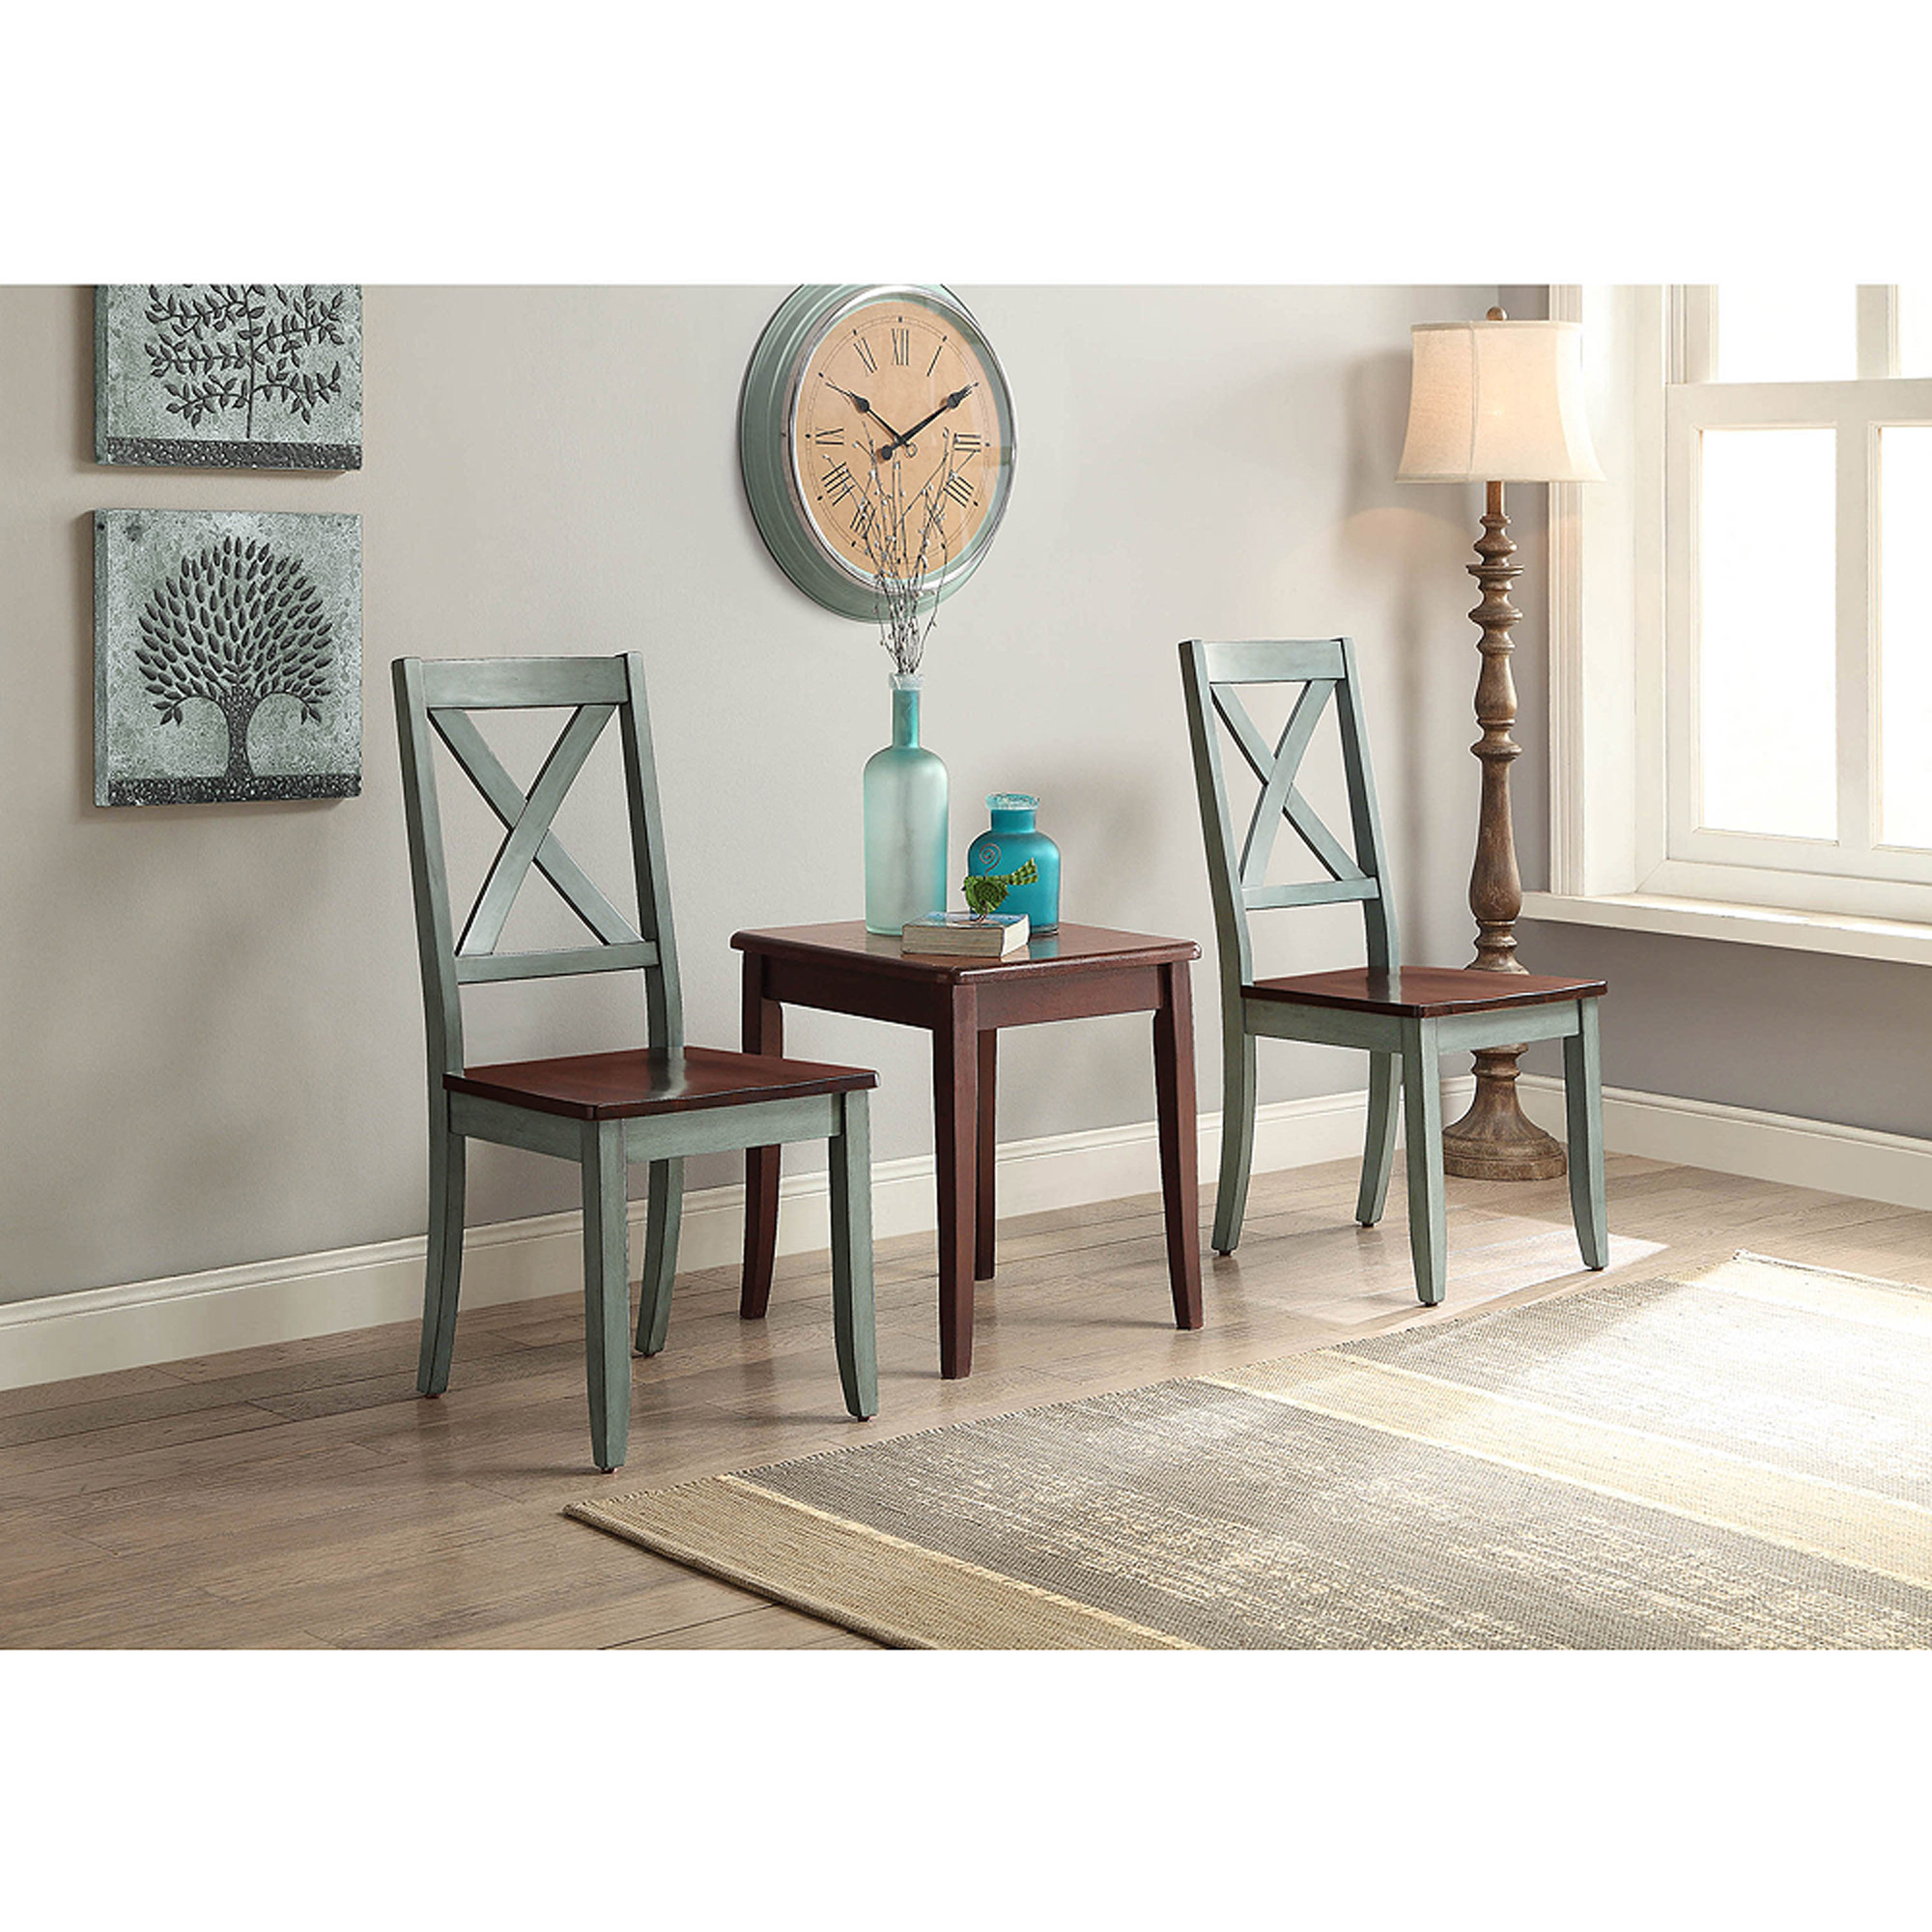 2 chair dining set clear ikea better homes and gardens maddox crossing blue of walmart com